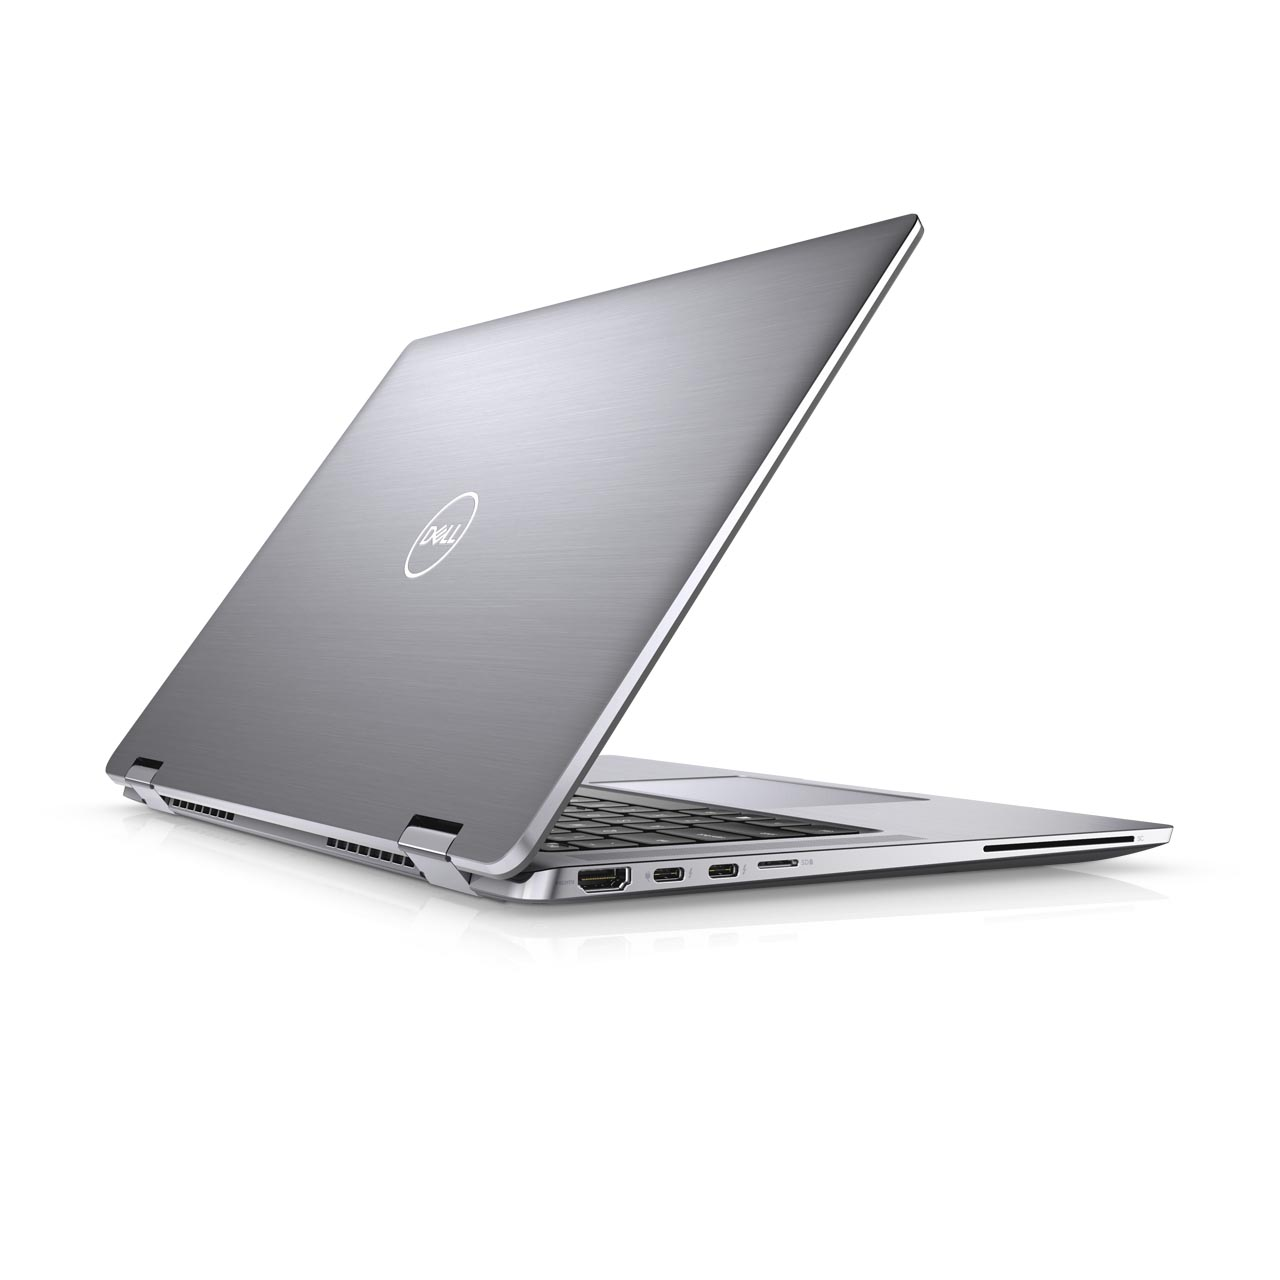 "DELL Latitude 9510/i5-10310U/16GB/256GB SSD/2in1 15.0"" FHD Touch/Intel UHD/ThBlt & FgrPr & SmtCd/W10P/3y PS"